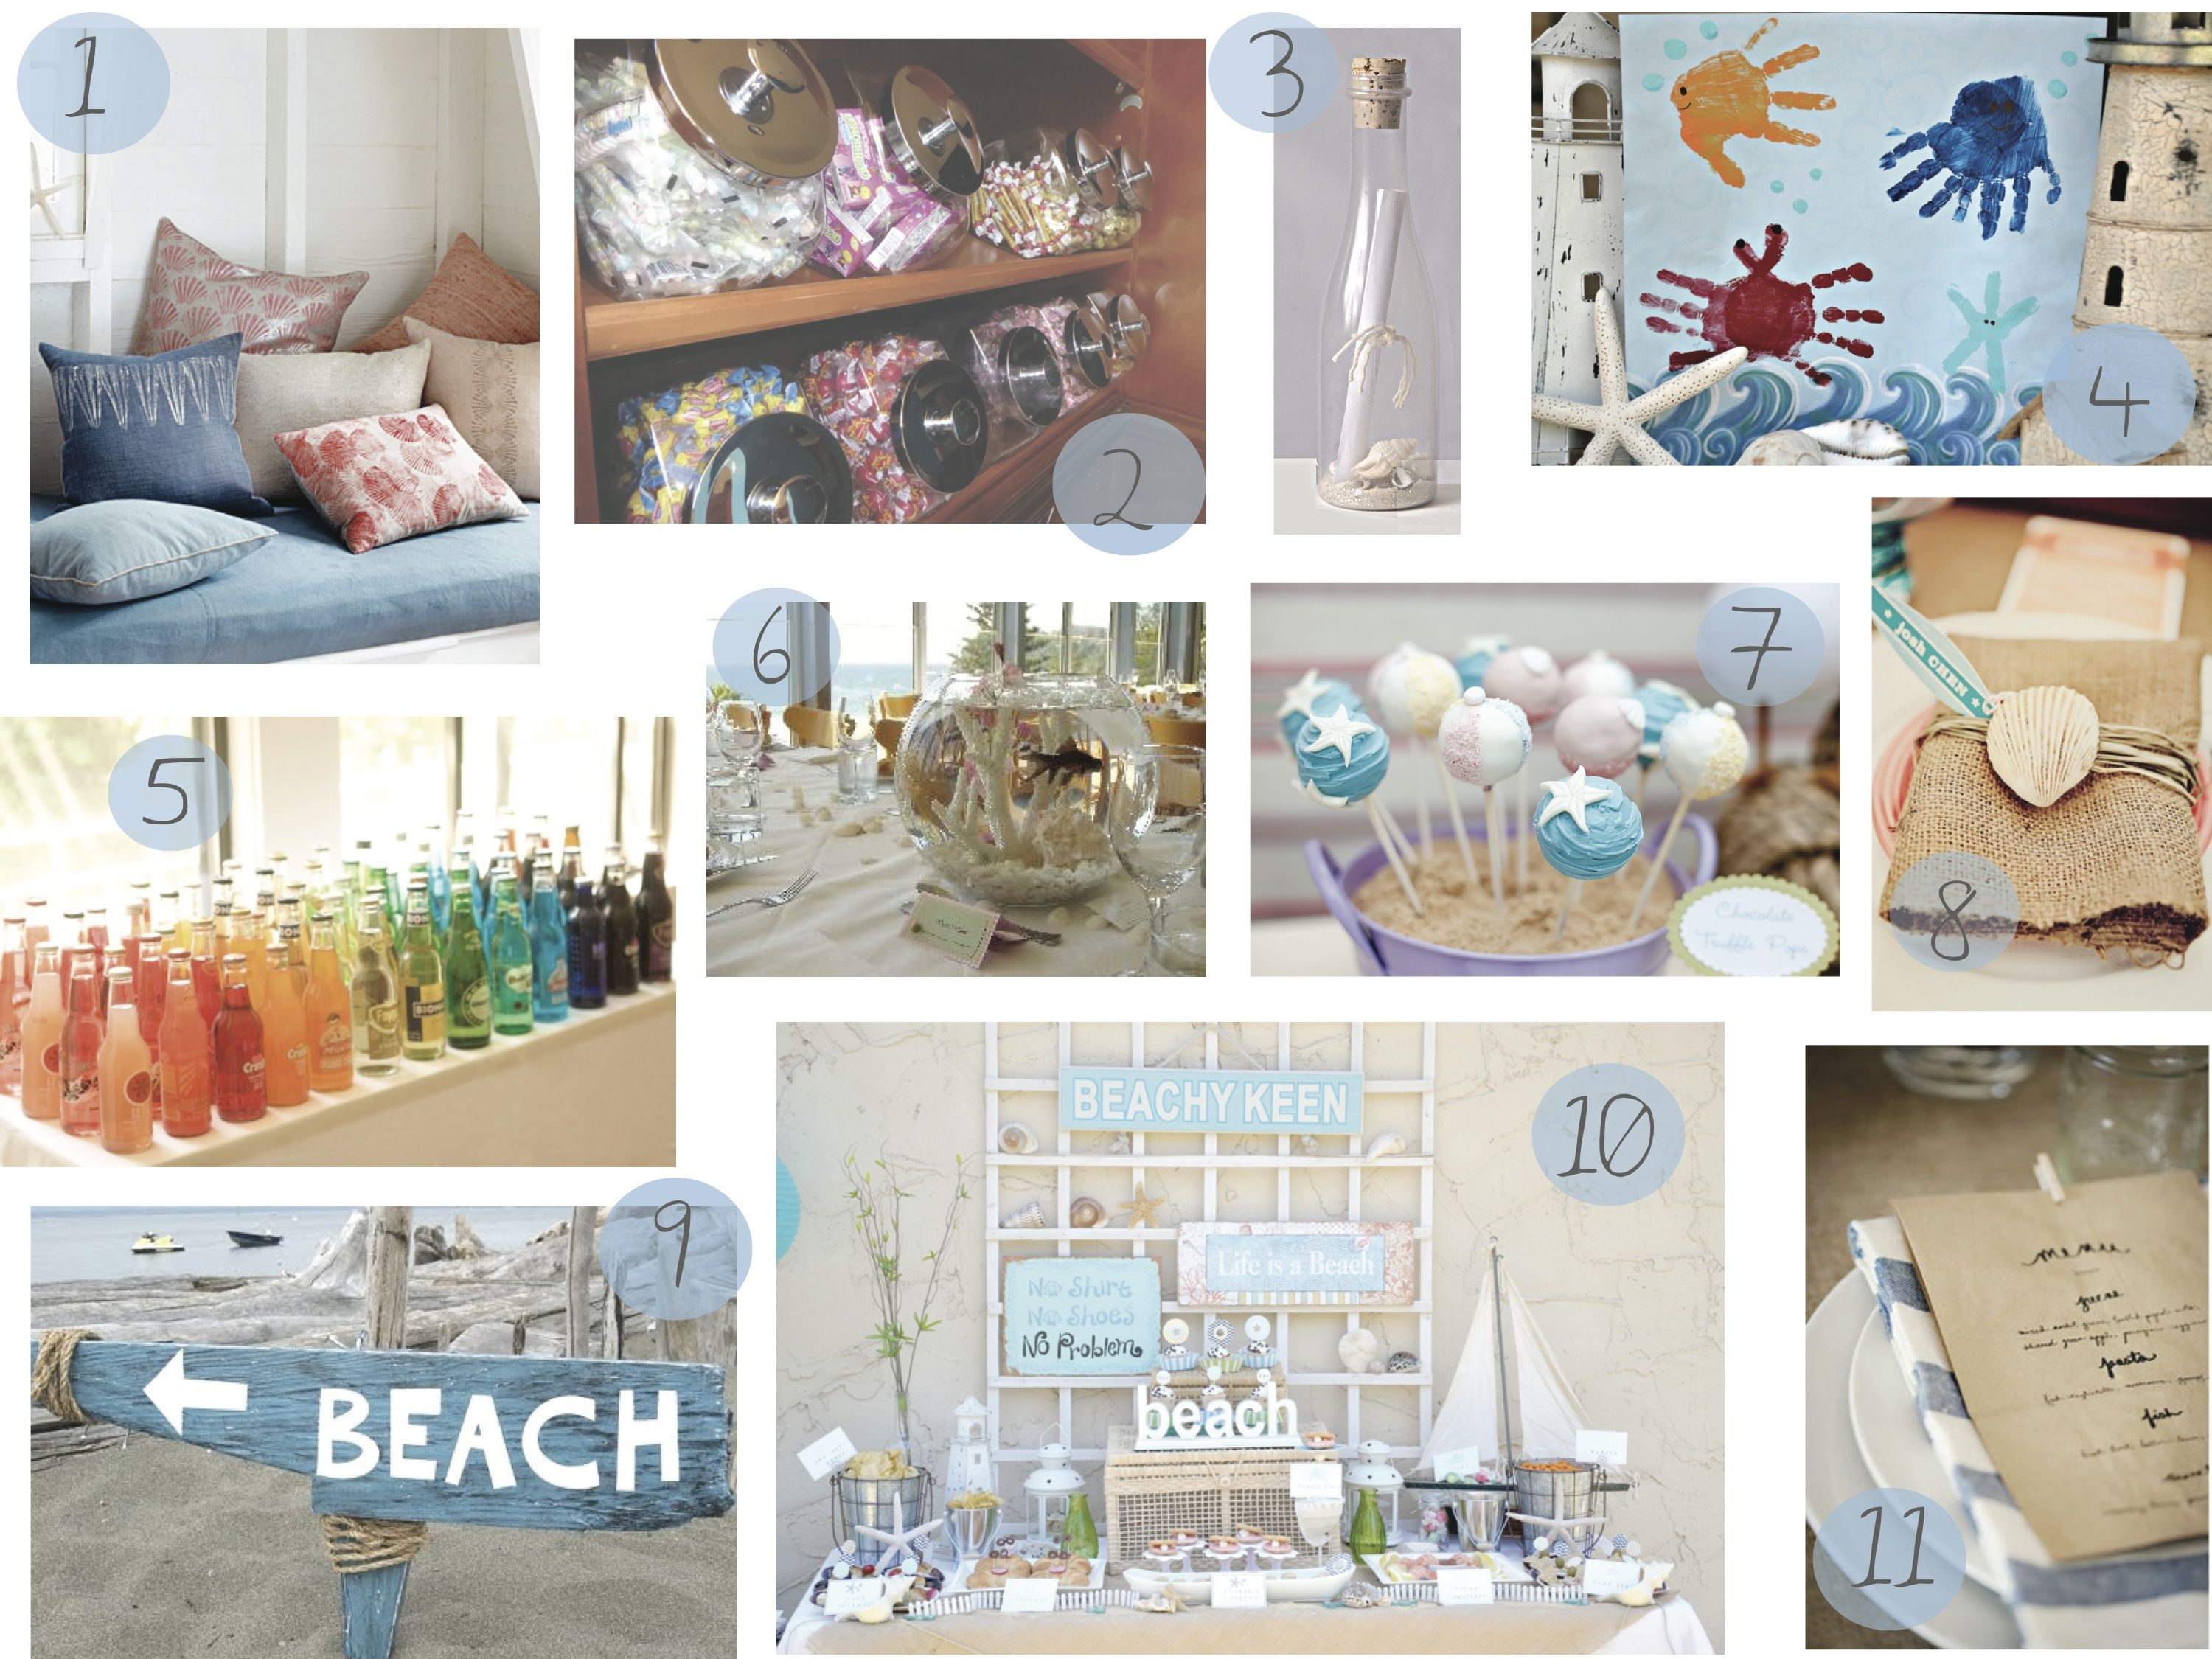 You are here: Home / inspiration / Vintage Beach Party | lucy+rosie+ ...